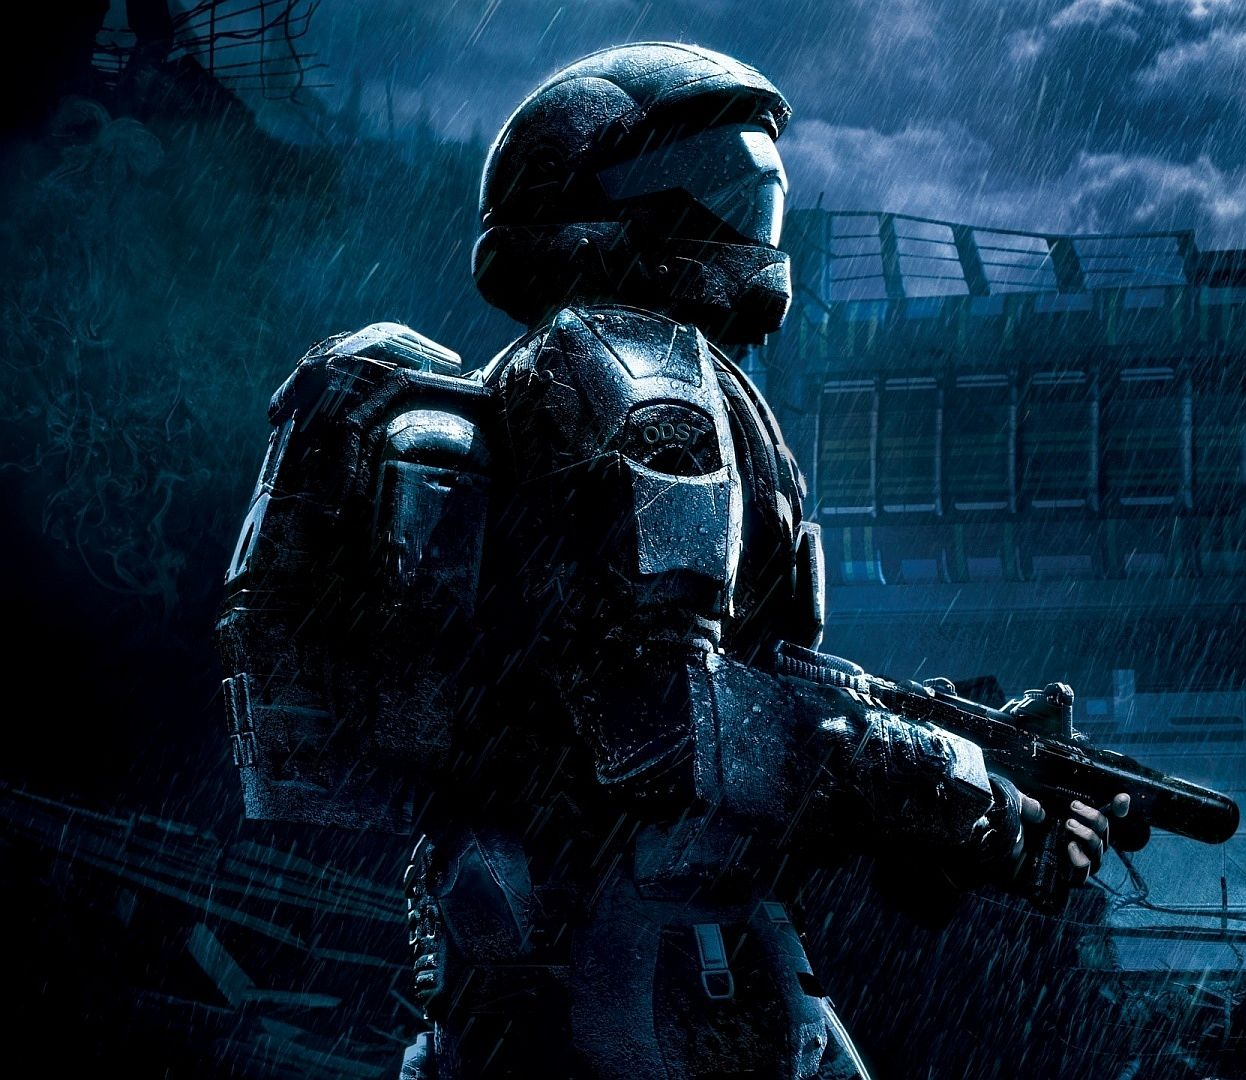 Halo 3: ODST drops on PC next week thumbnail